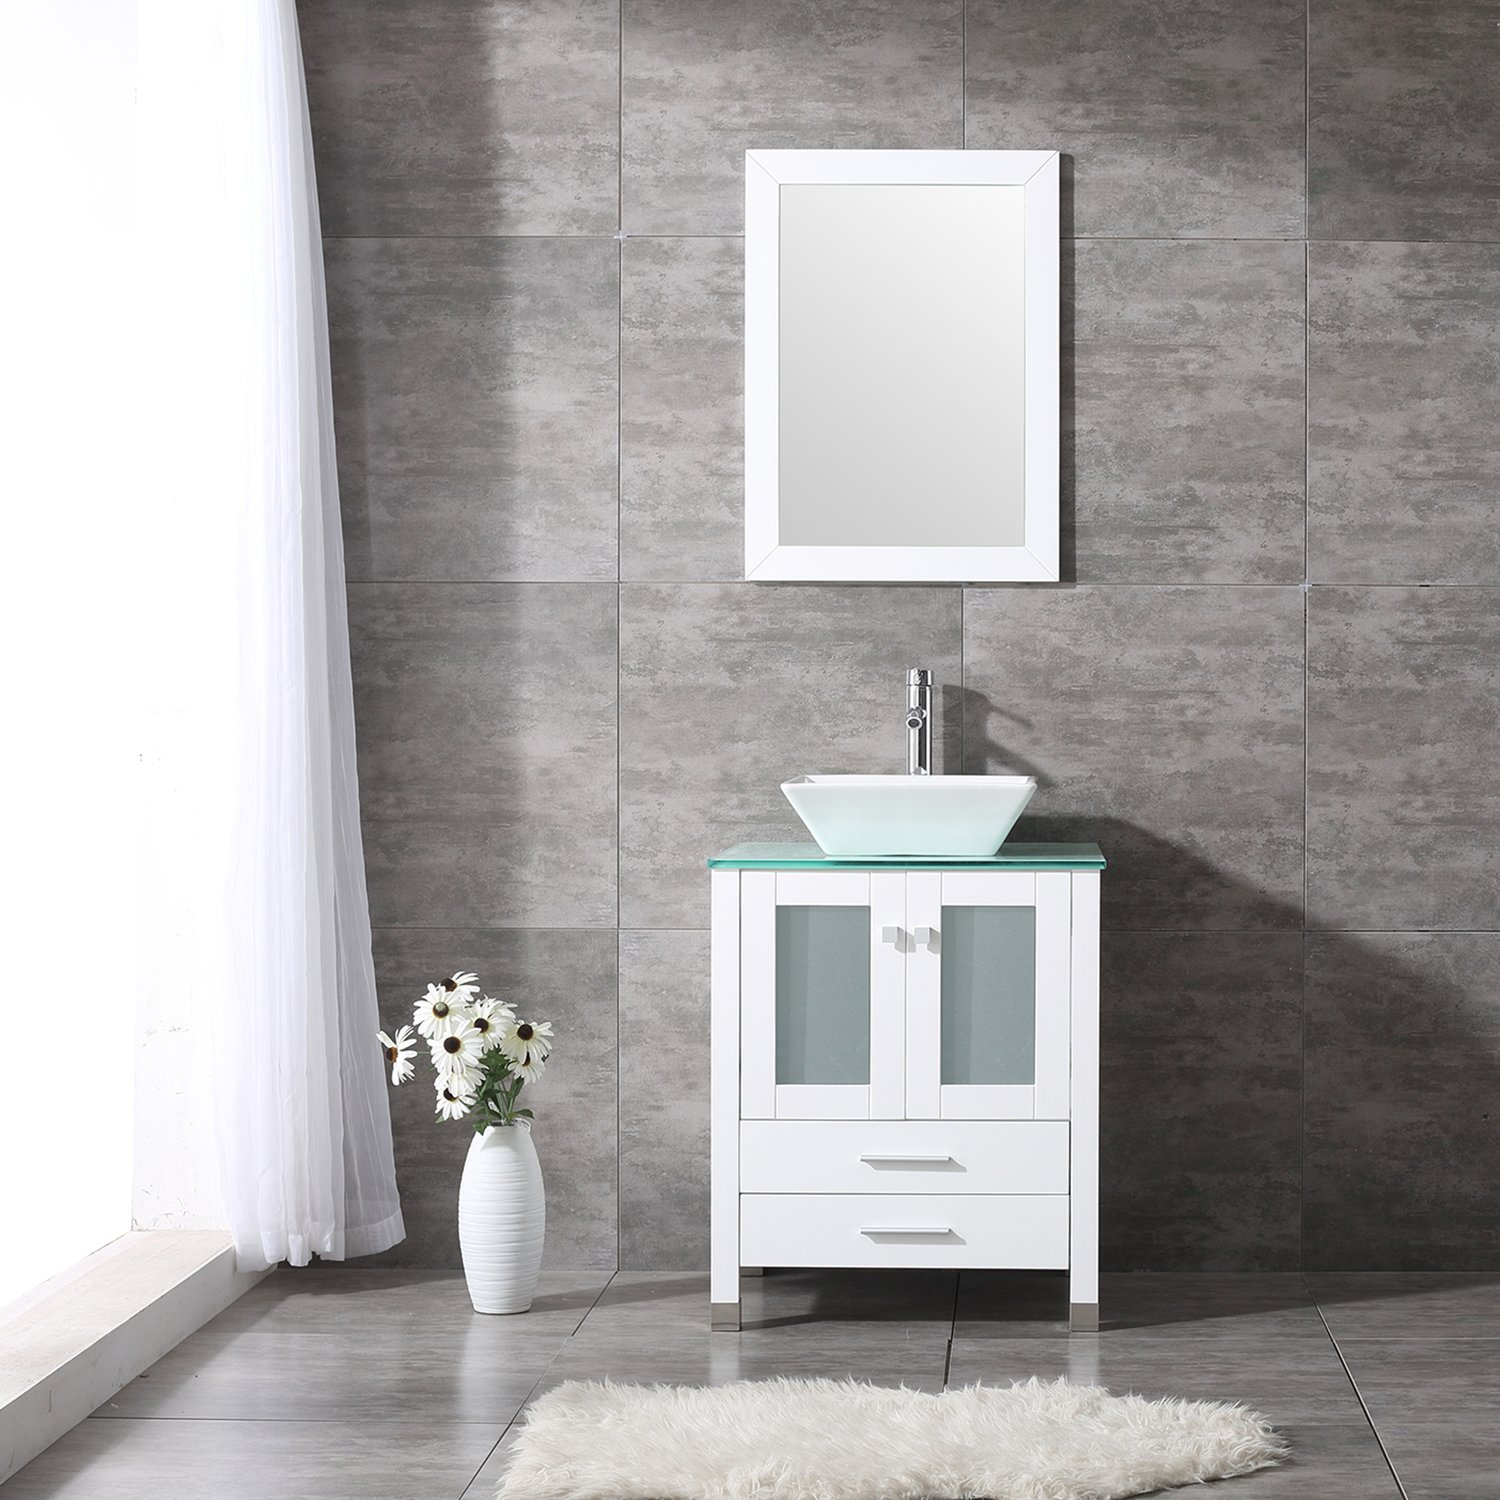 "BATHJOY 24"" White Bathroom Wood Vanity Cabinet Top Square Ceramic Vessel Sink Faucet Drain Combo with Mirror Vanities Set by BATHJOY"